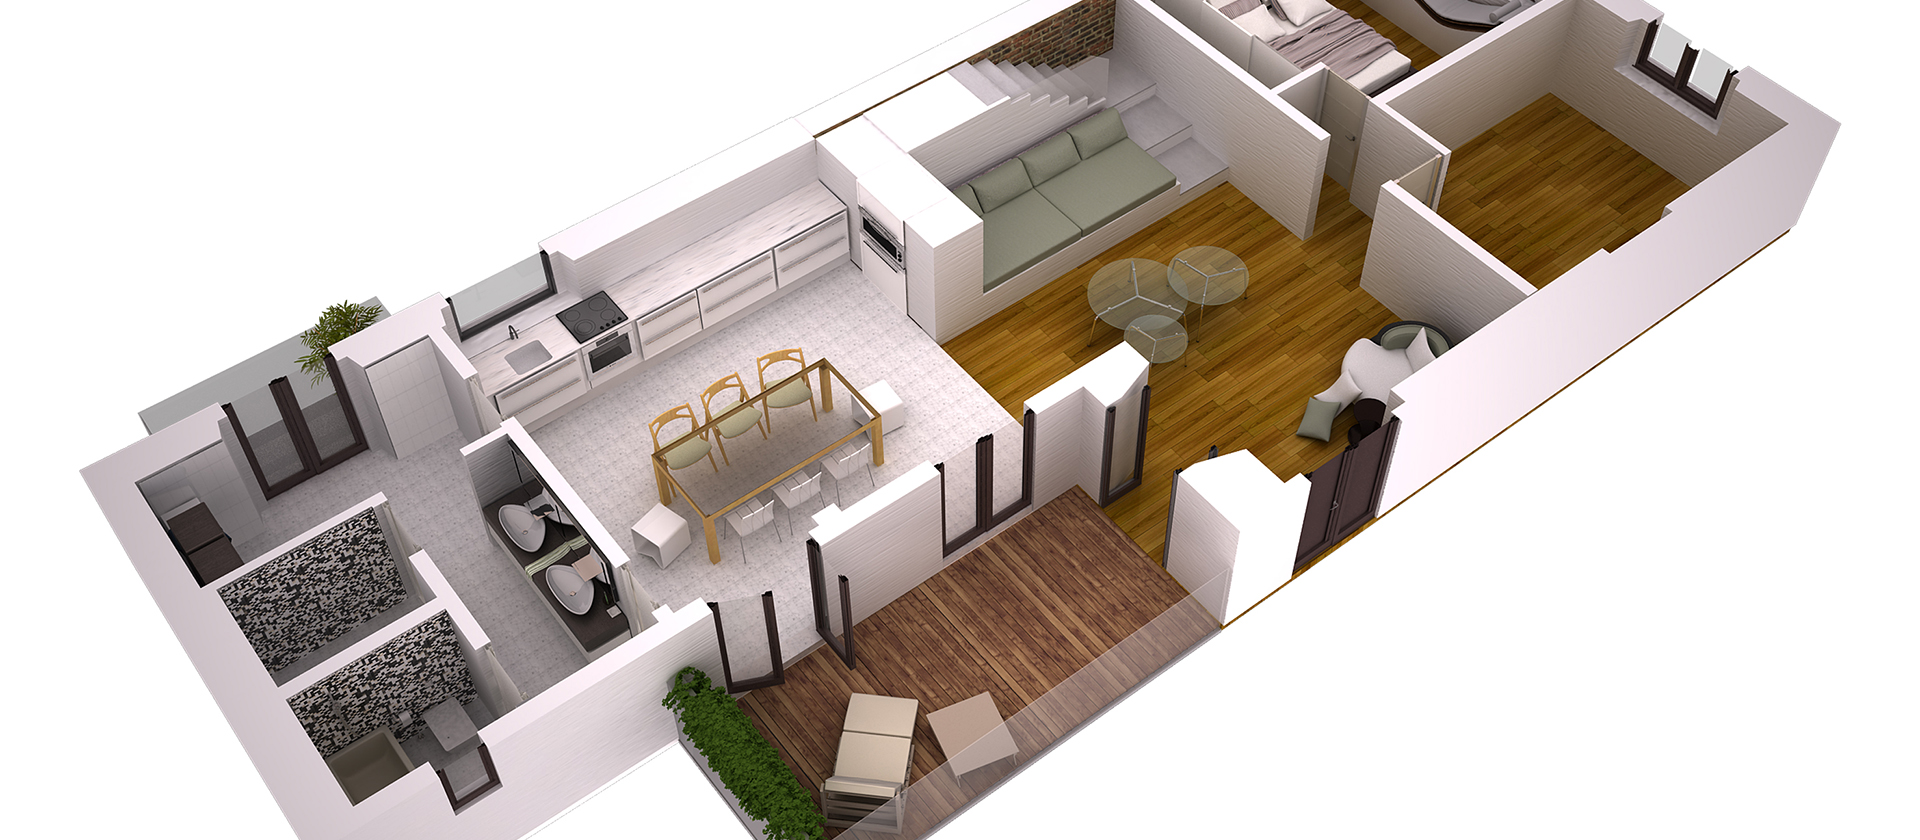 interior design school plans interior design ideas